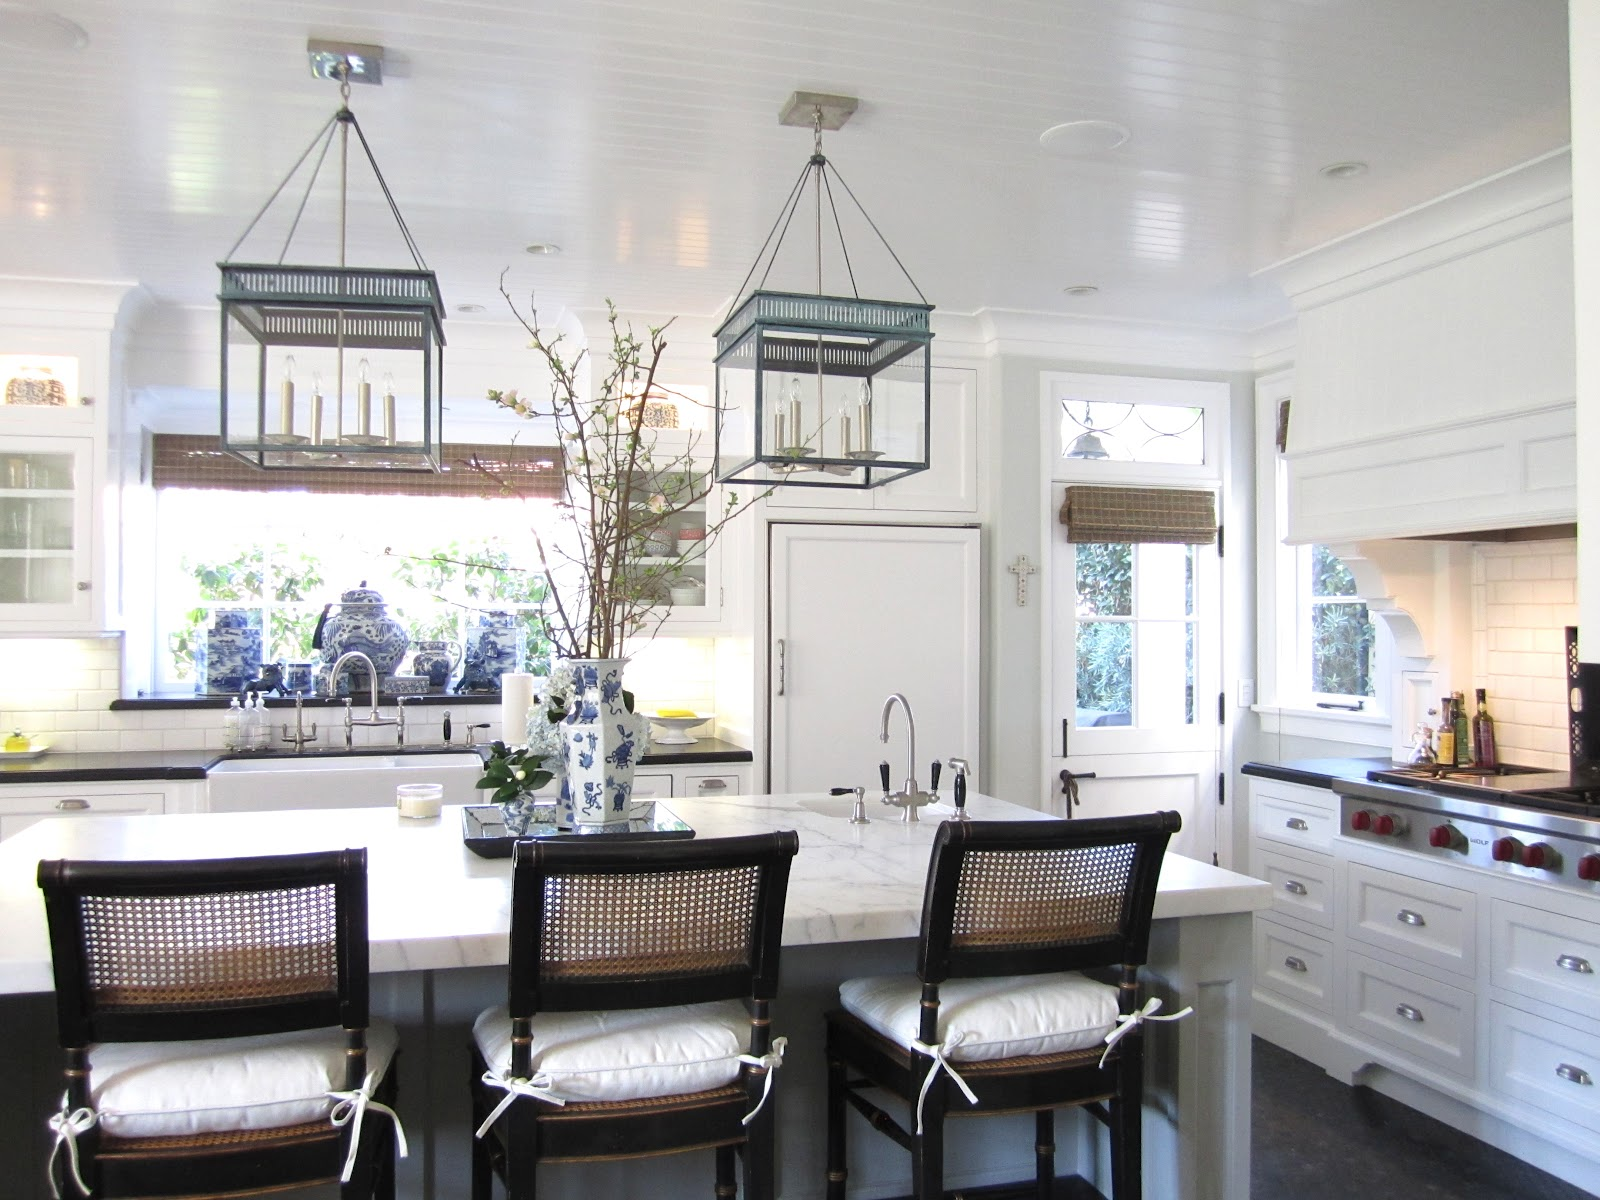 Light Banquette Seating White Subway Tile Just Gorgeous Head Here